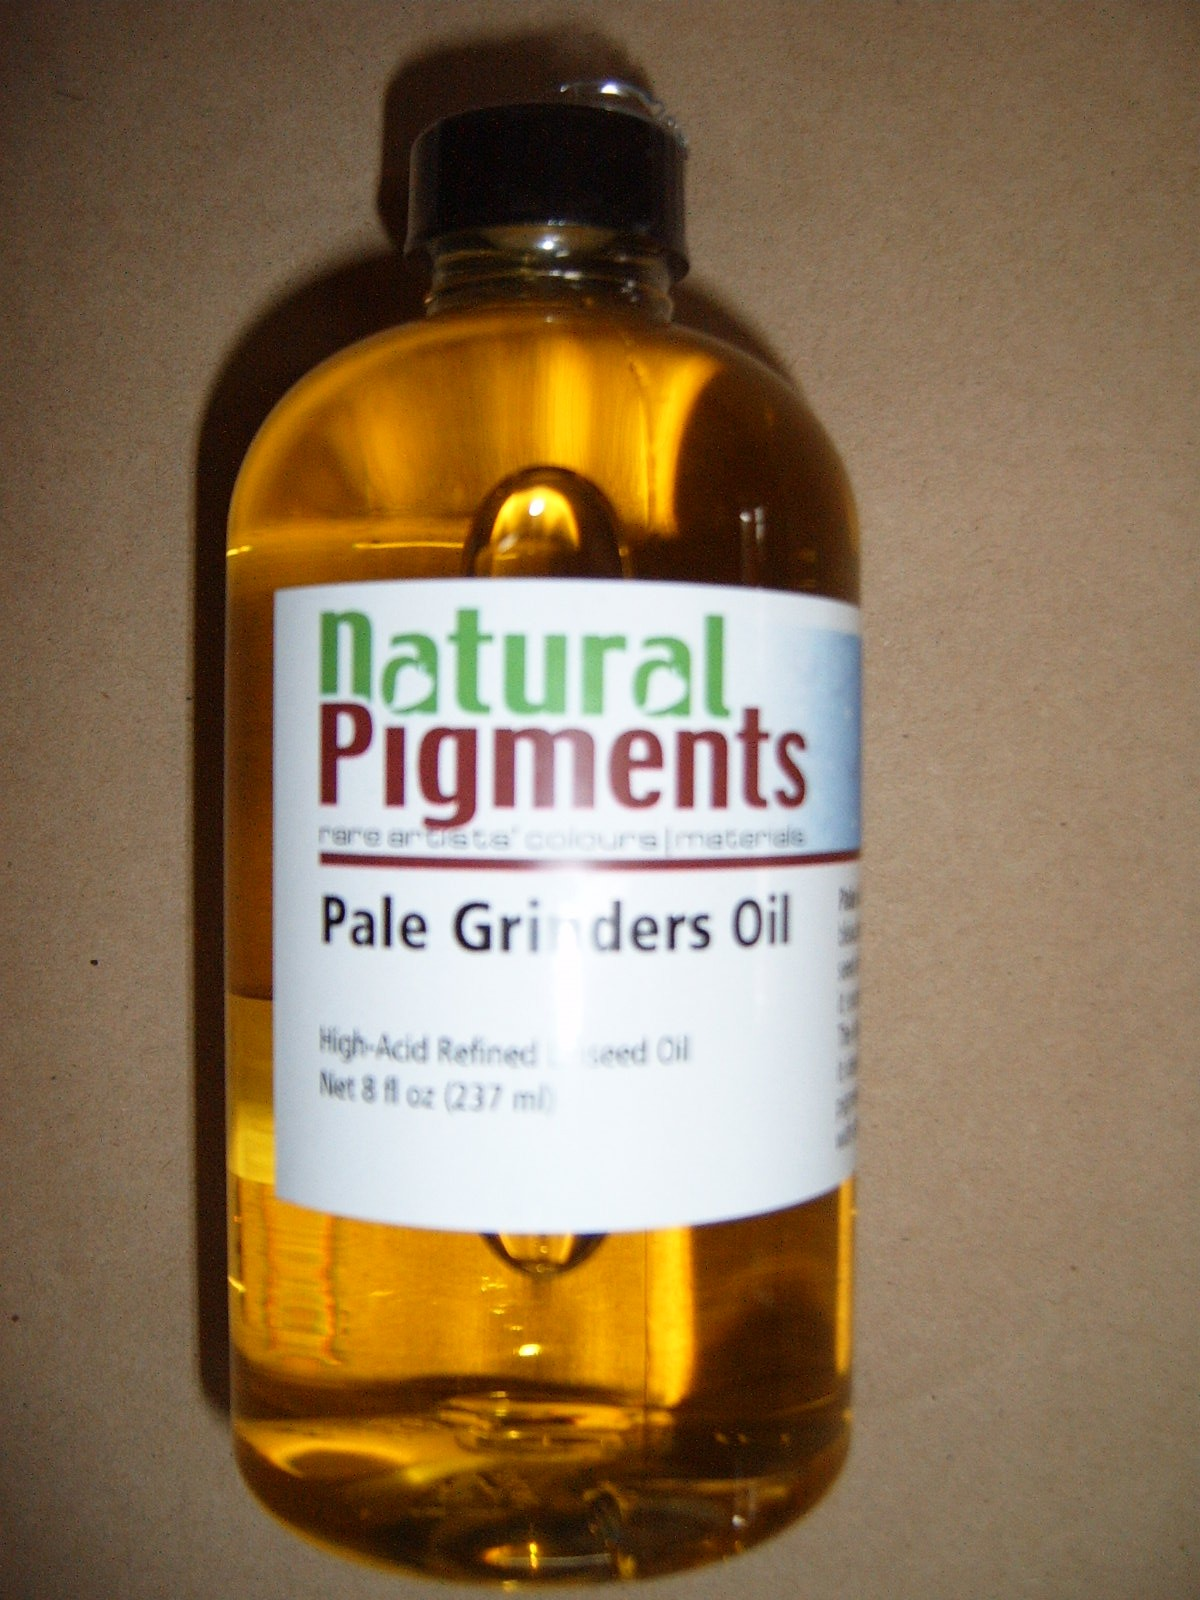 Natural Pigments Pale Grinders Linseed Oil